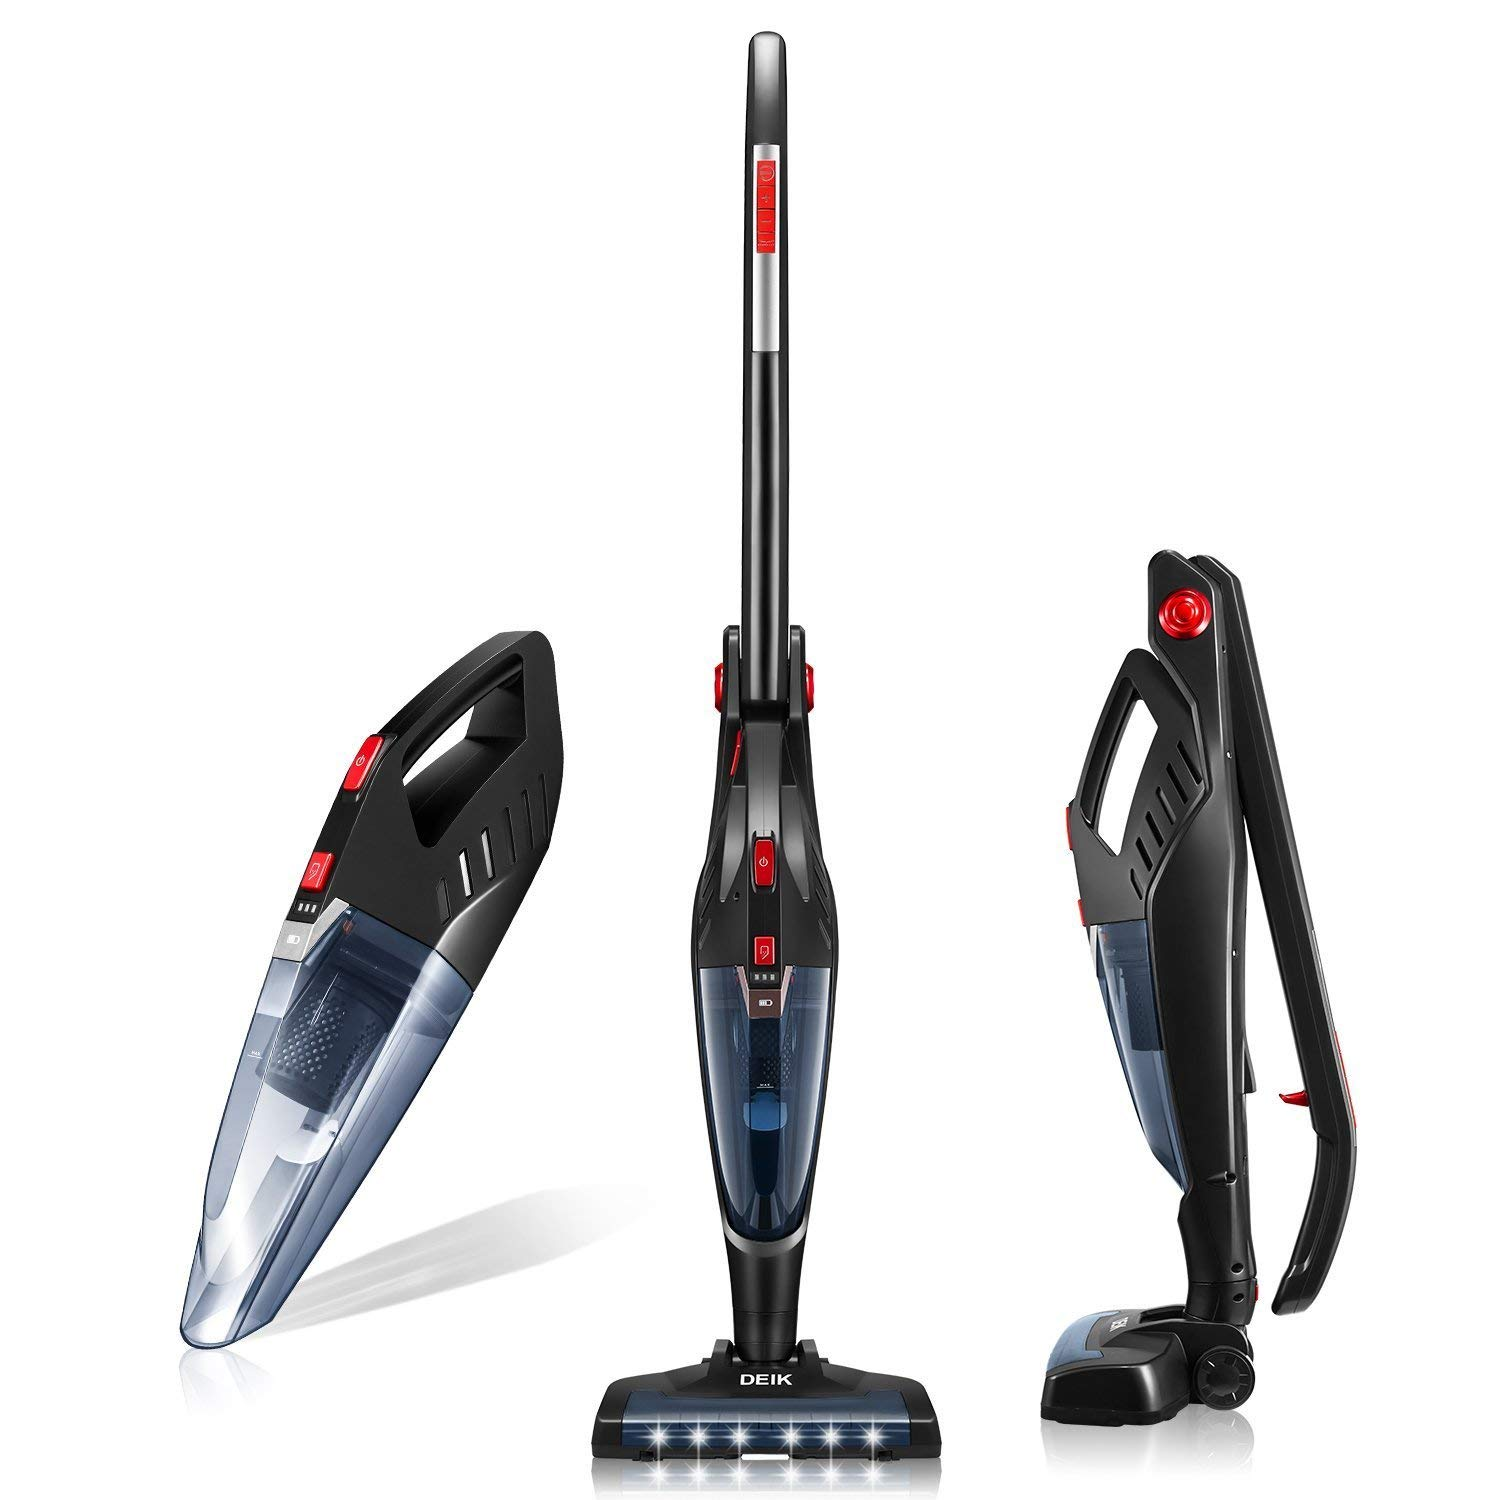 Deik Cordless Stick Cleaner Lightweight 2 in 1 Handheld Vacuum with Rechargeable Lithium Ion Battery and LED Brush for Floor Carpet Pet Hair, Up to 60 Mins, Medium, Black